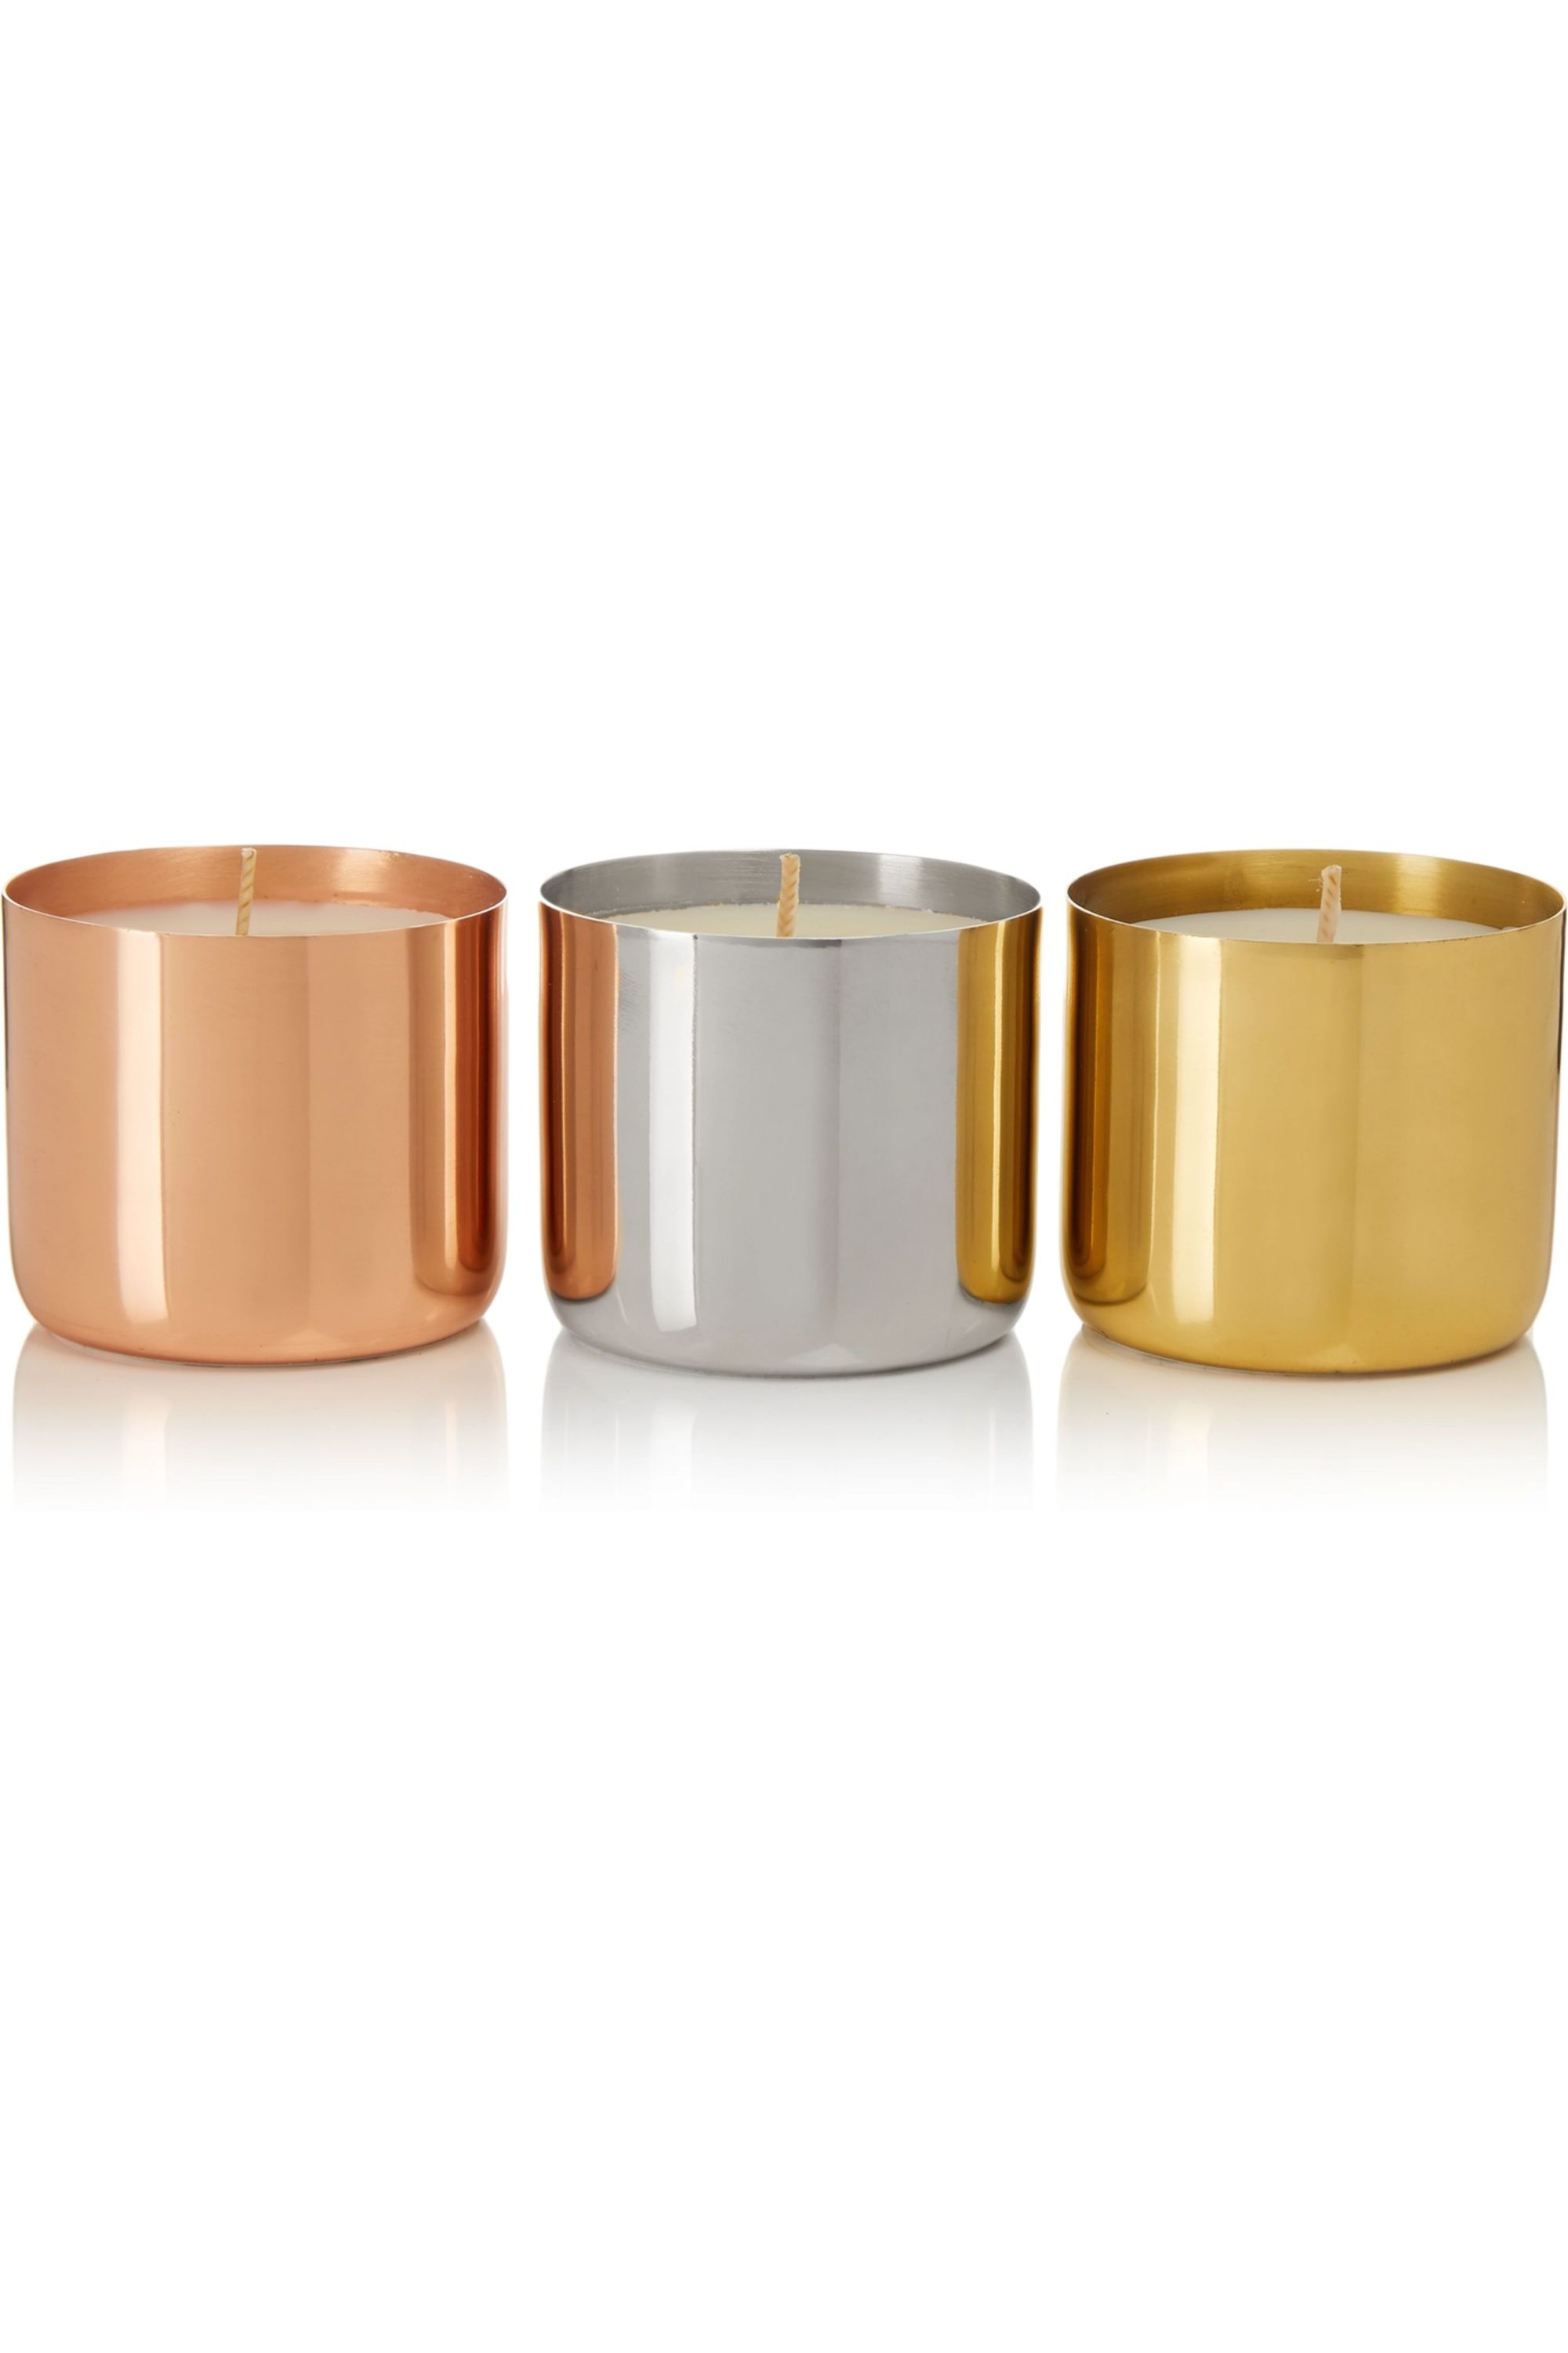 Tom Dixon London, Orientalist and Royalty set of three candles, 3 x 120g